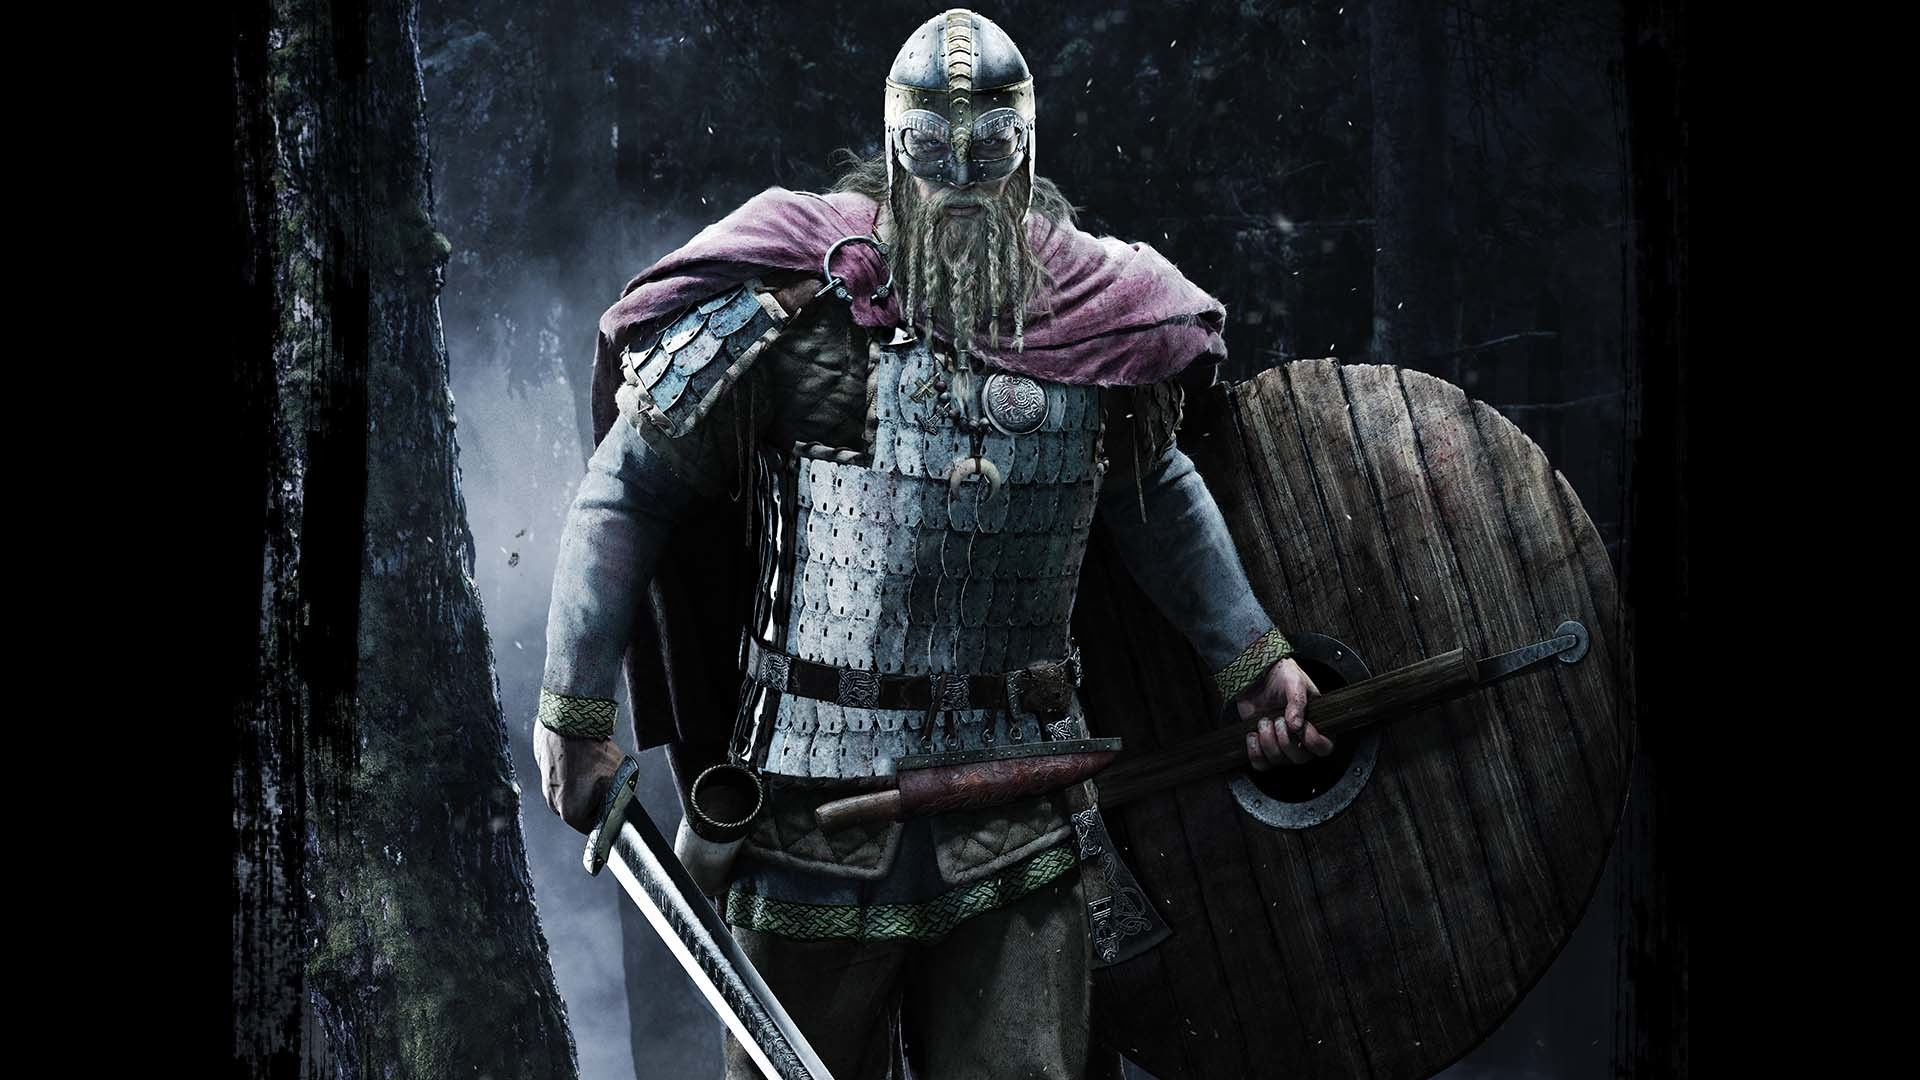 Ever wanted to become a Norse warrior? If so, then Norway is about to open  a school for Vikings, so don't miss the chance to become a student!